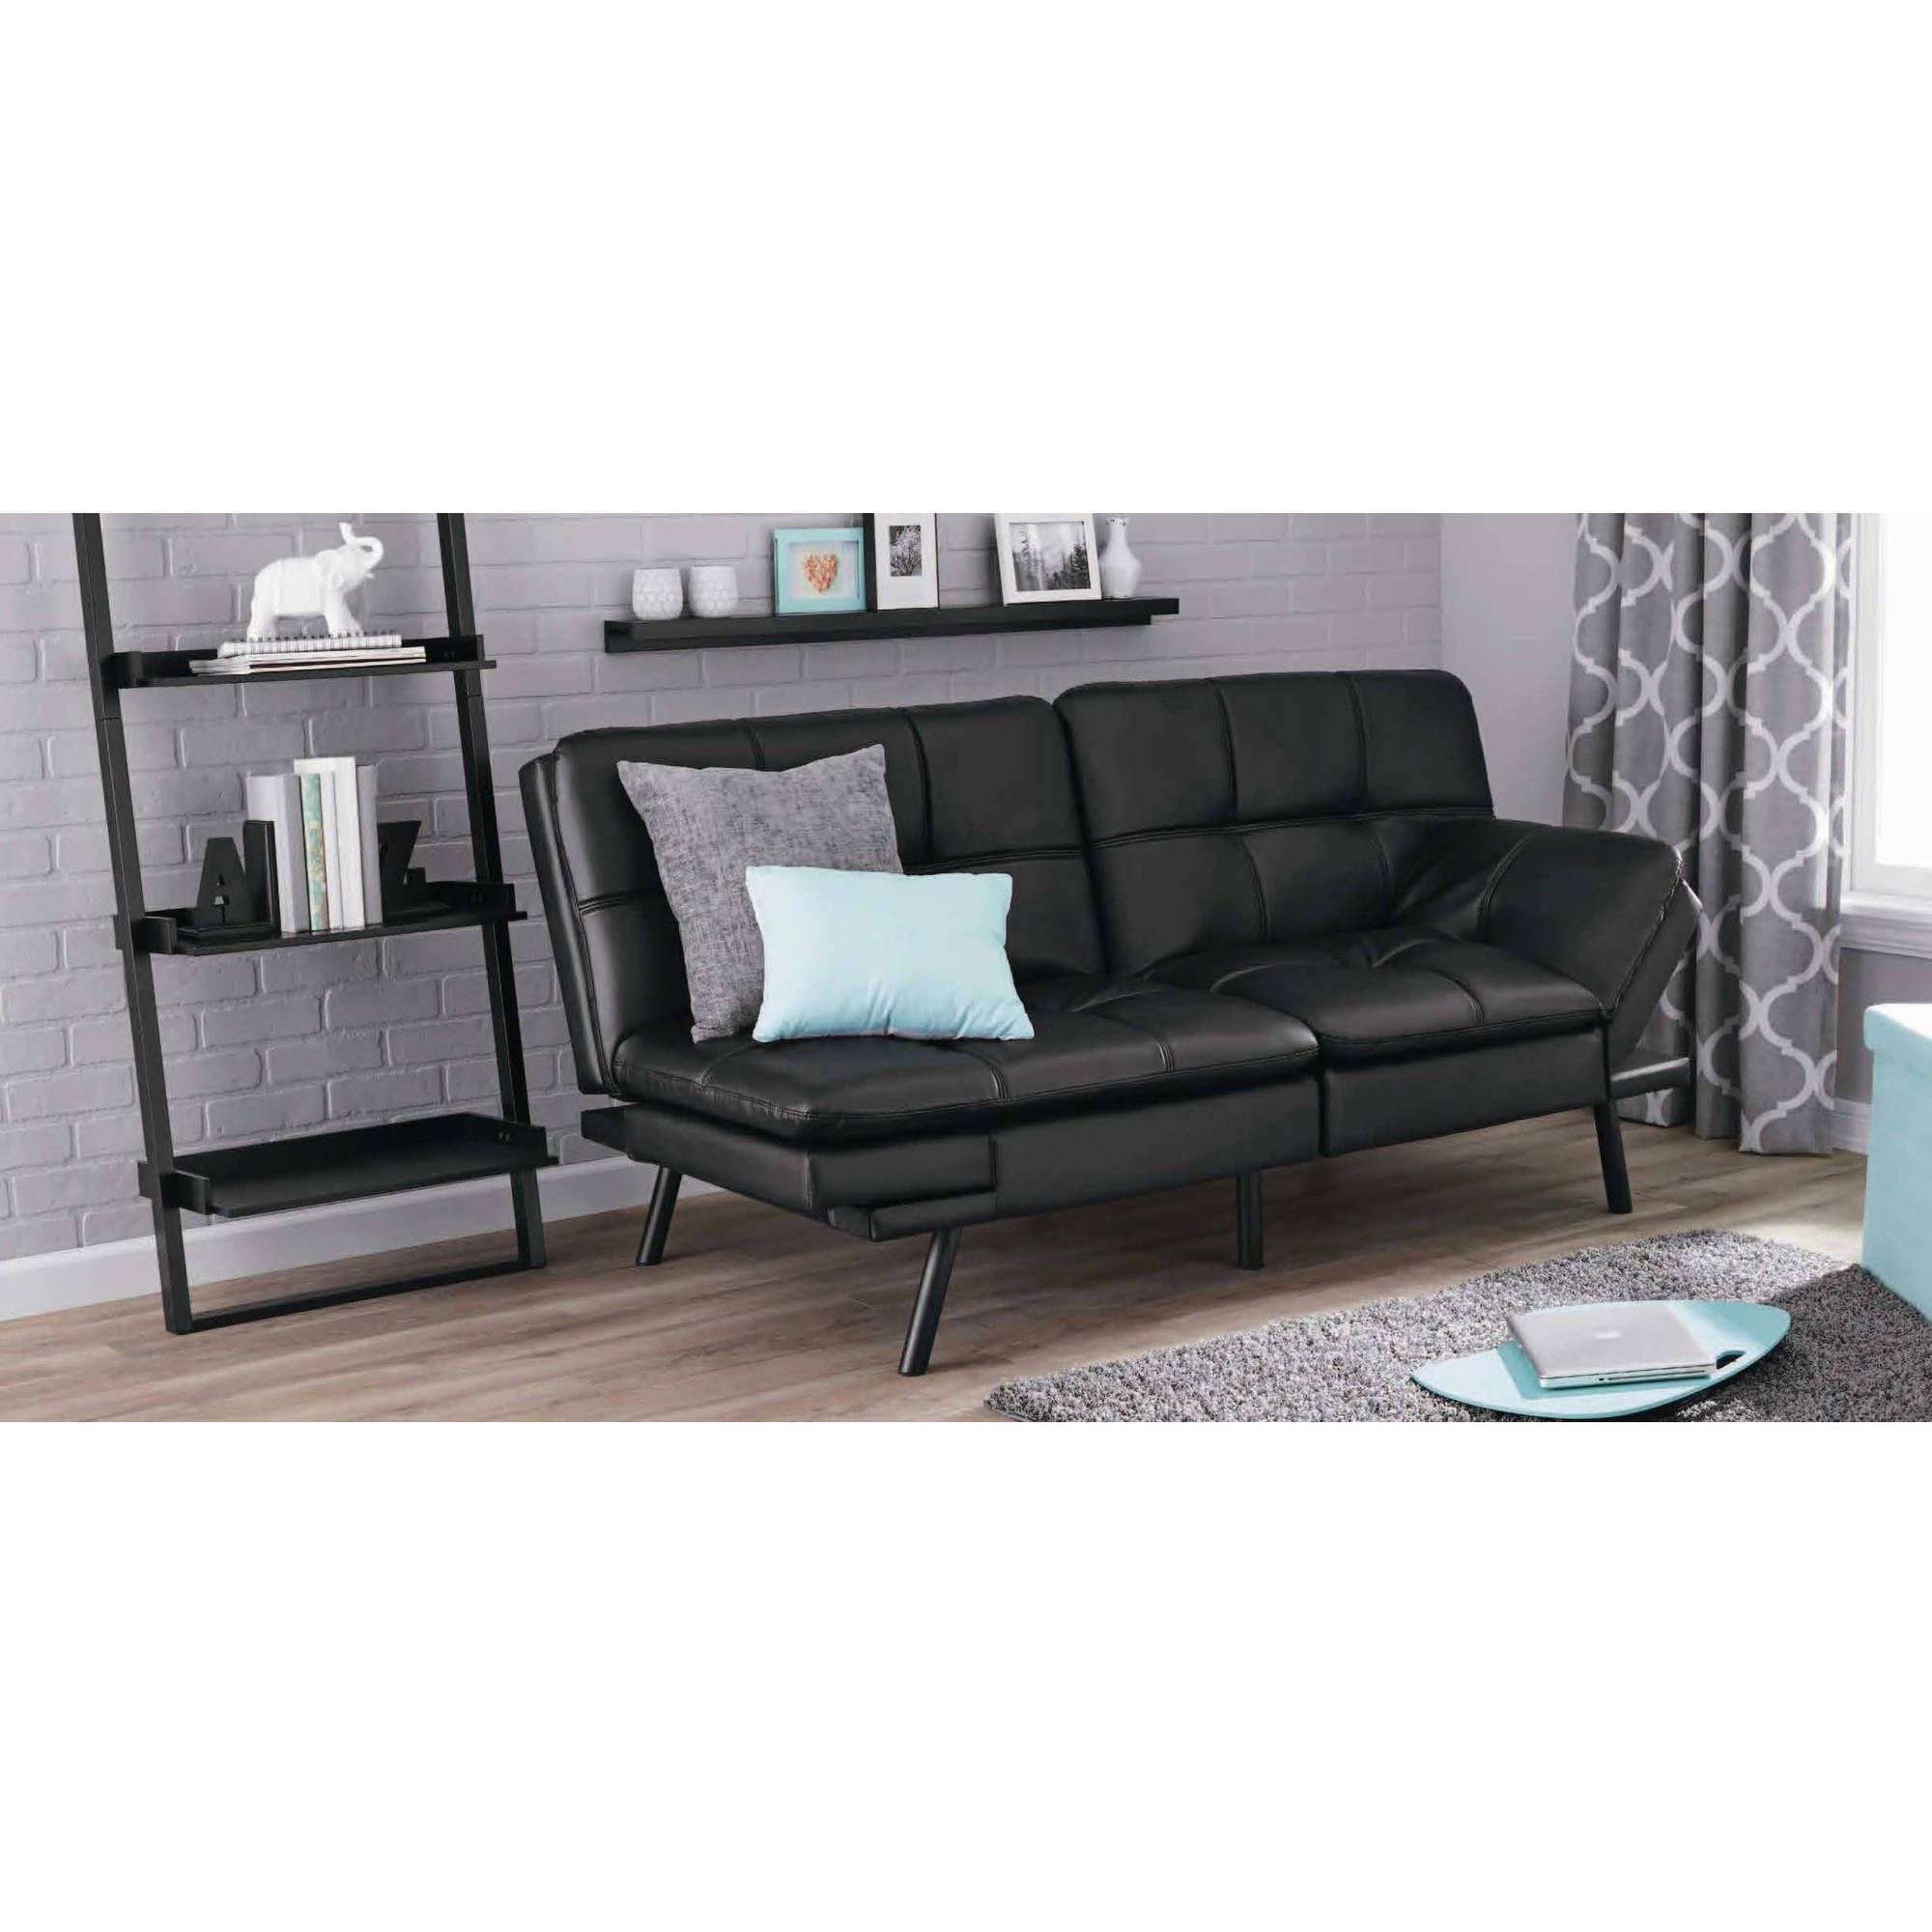 Mainstays Memory Foam Futon, Multiple Colors